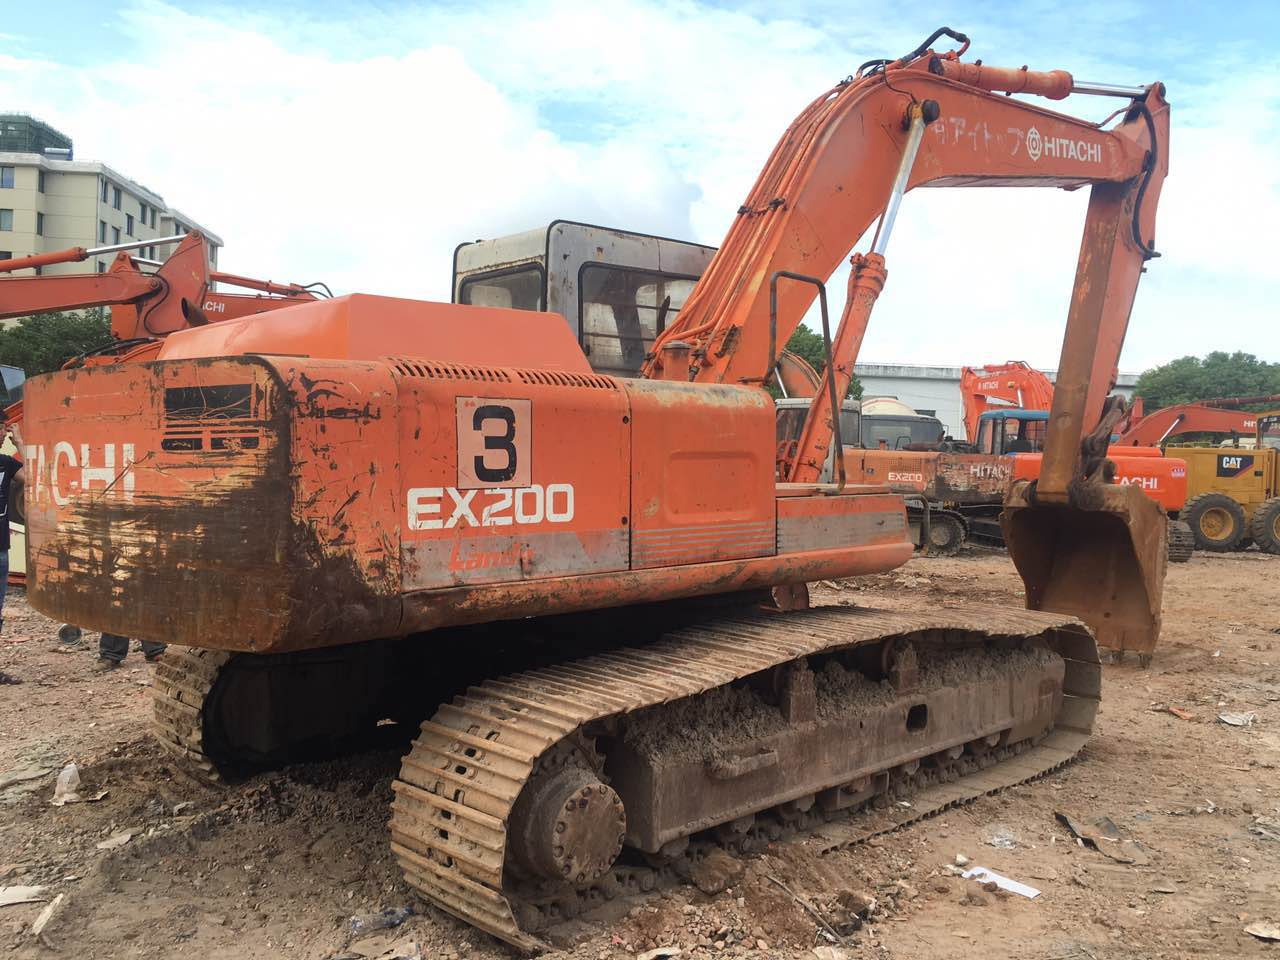 Original used Hitachi excavator, used Hitachi excavator for sale